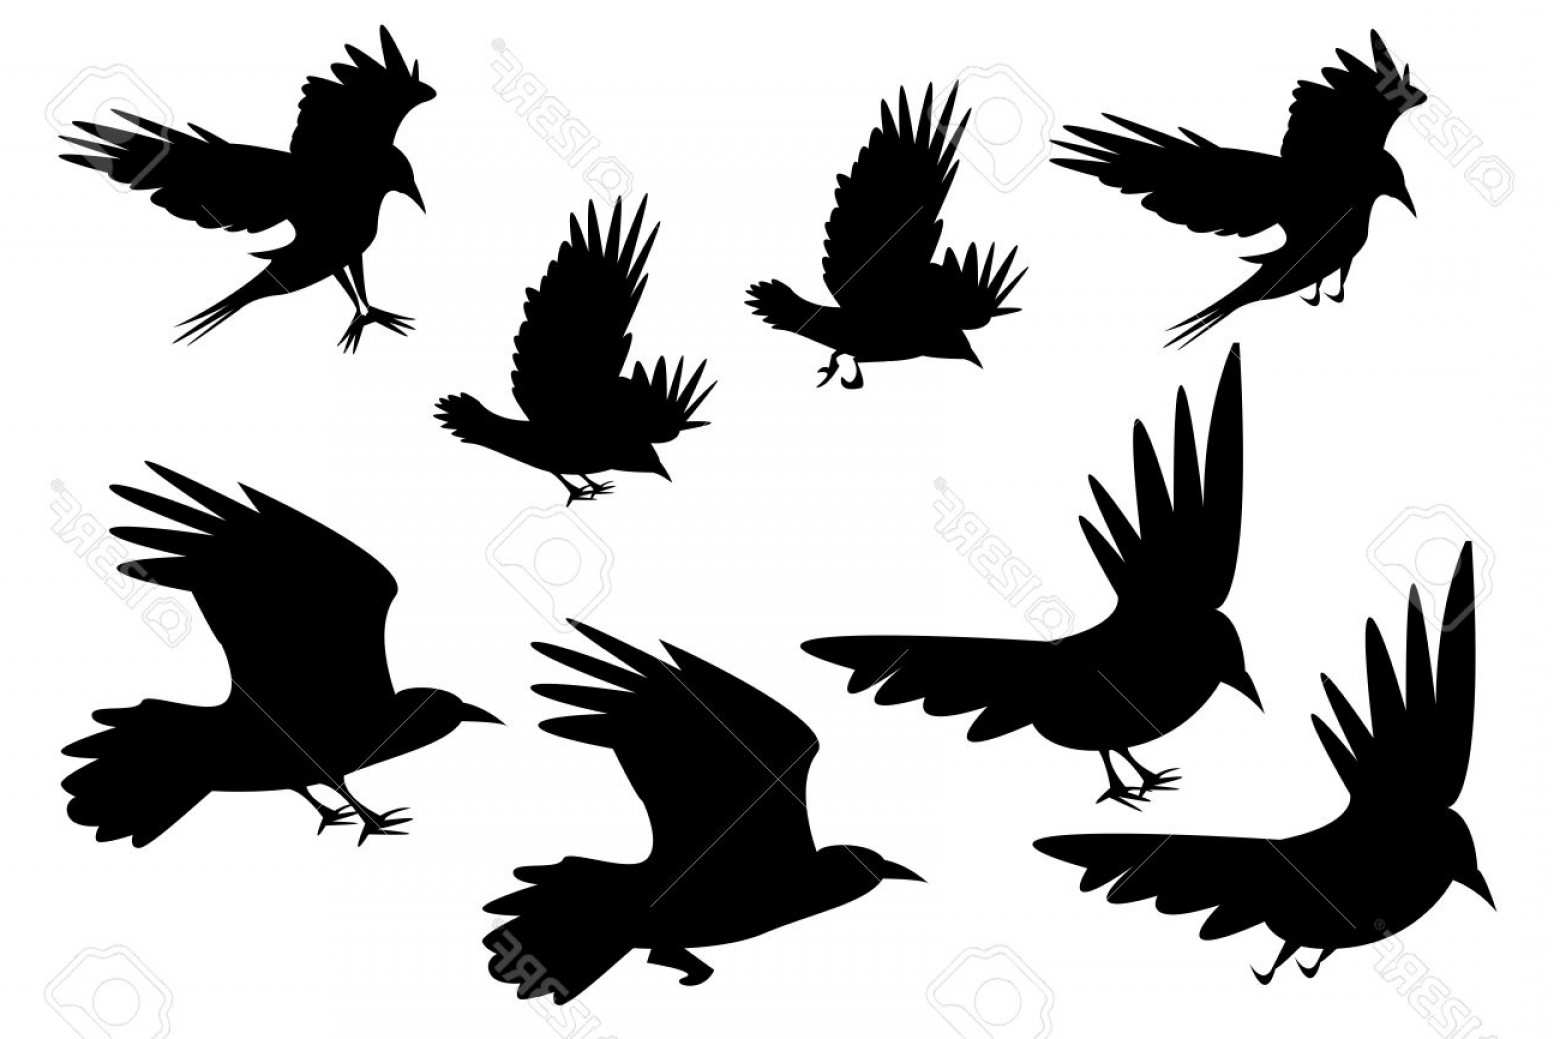 1560x1039 Flying Raven Vector Lazttweet